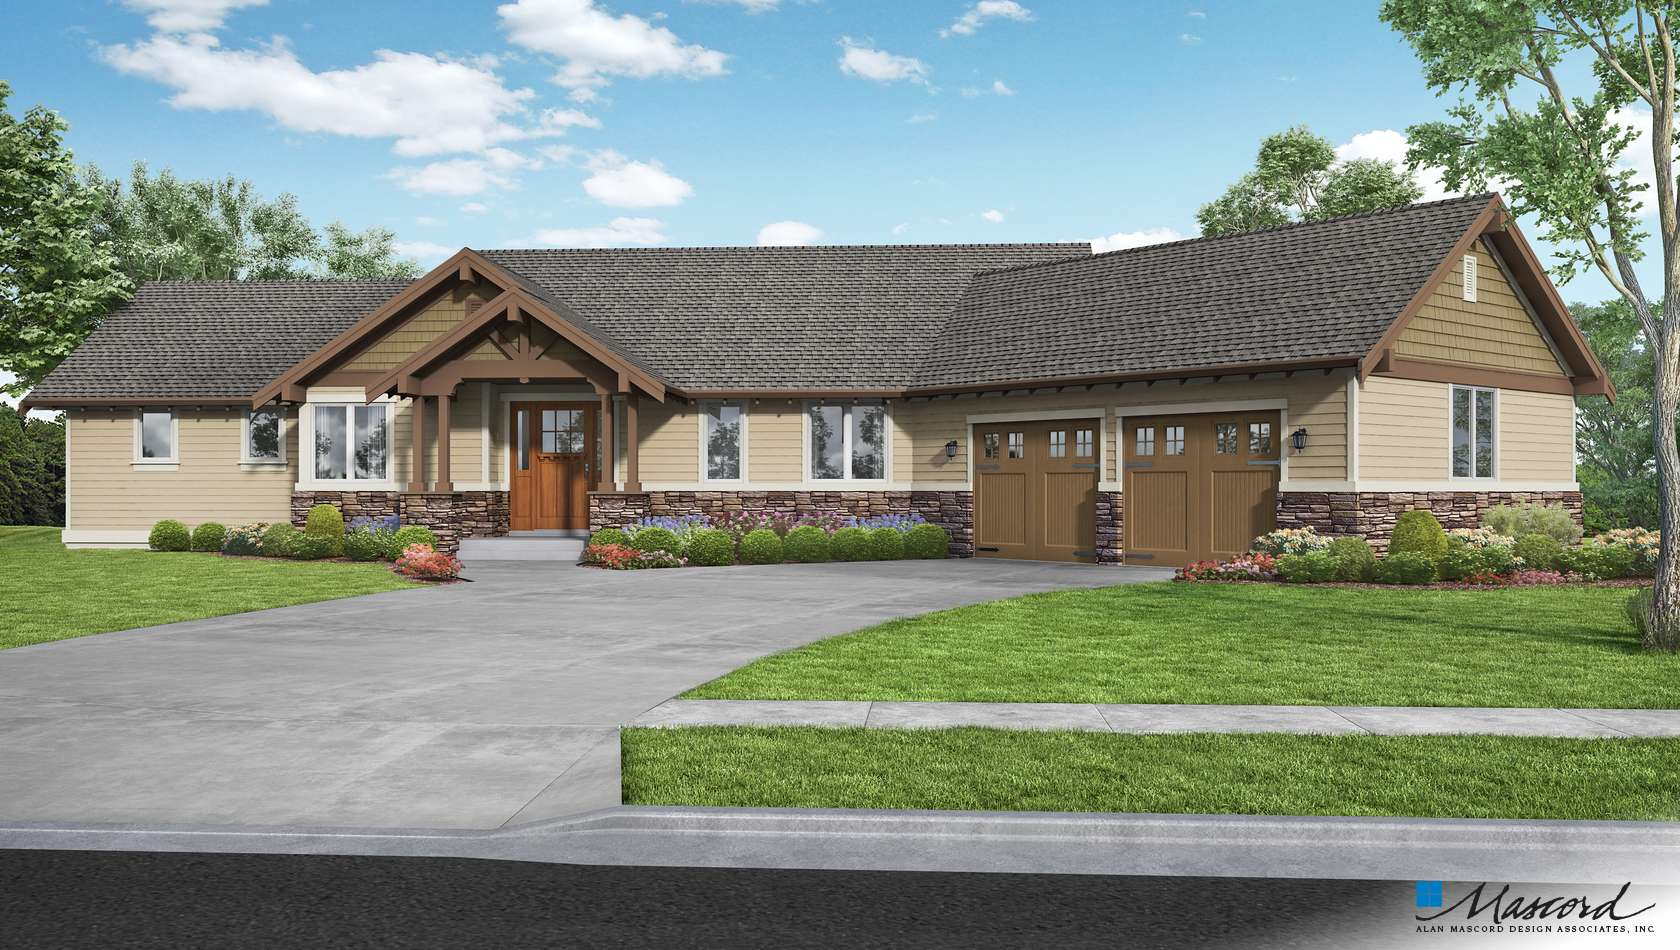 Main image for house plan 22156G: The Blythewood